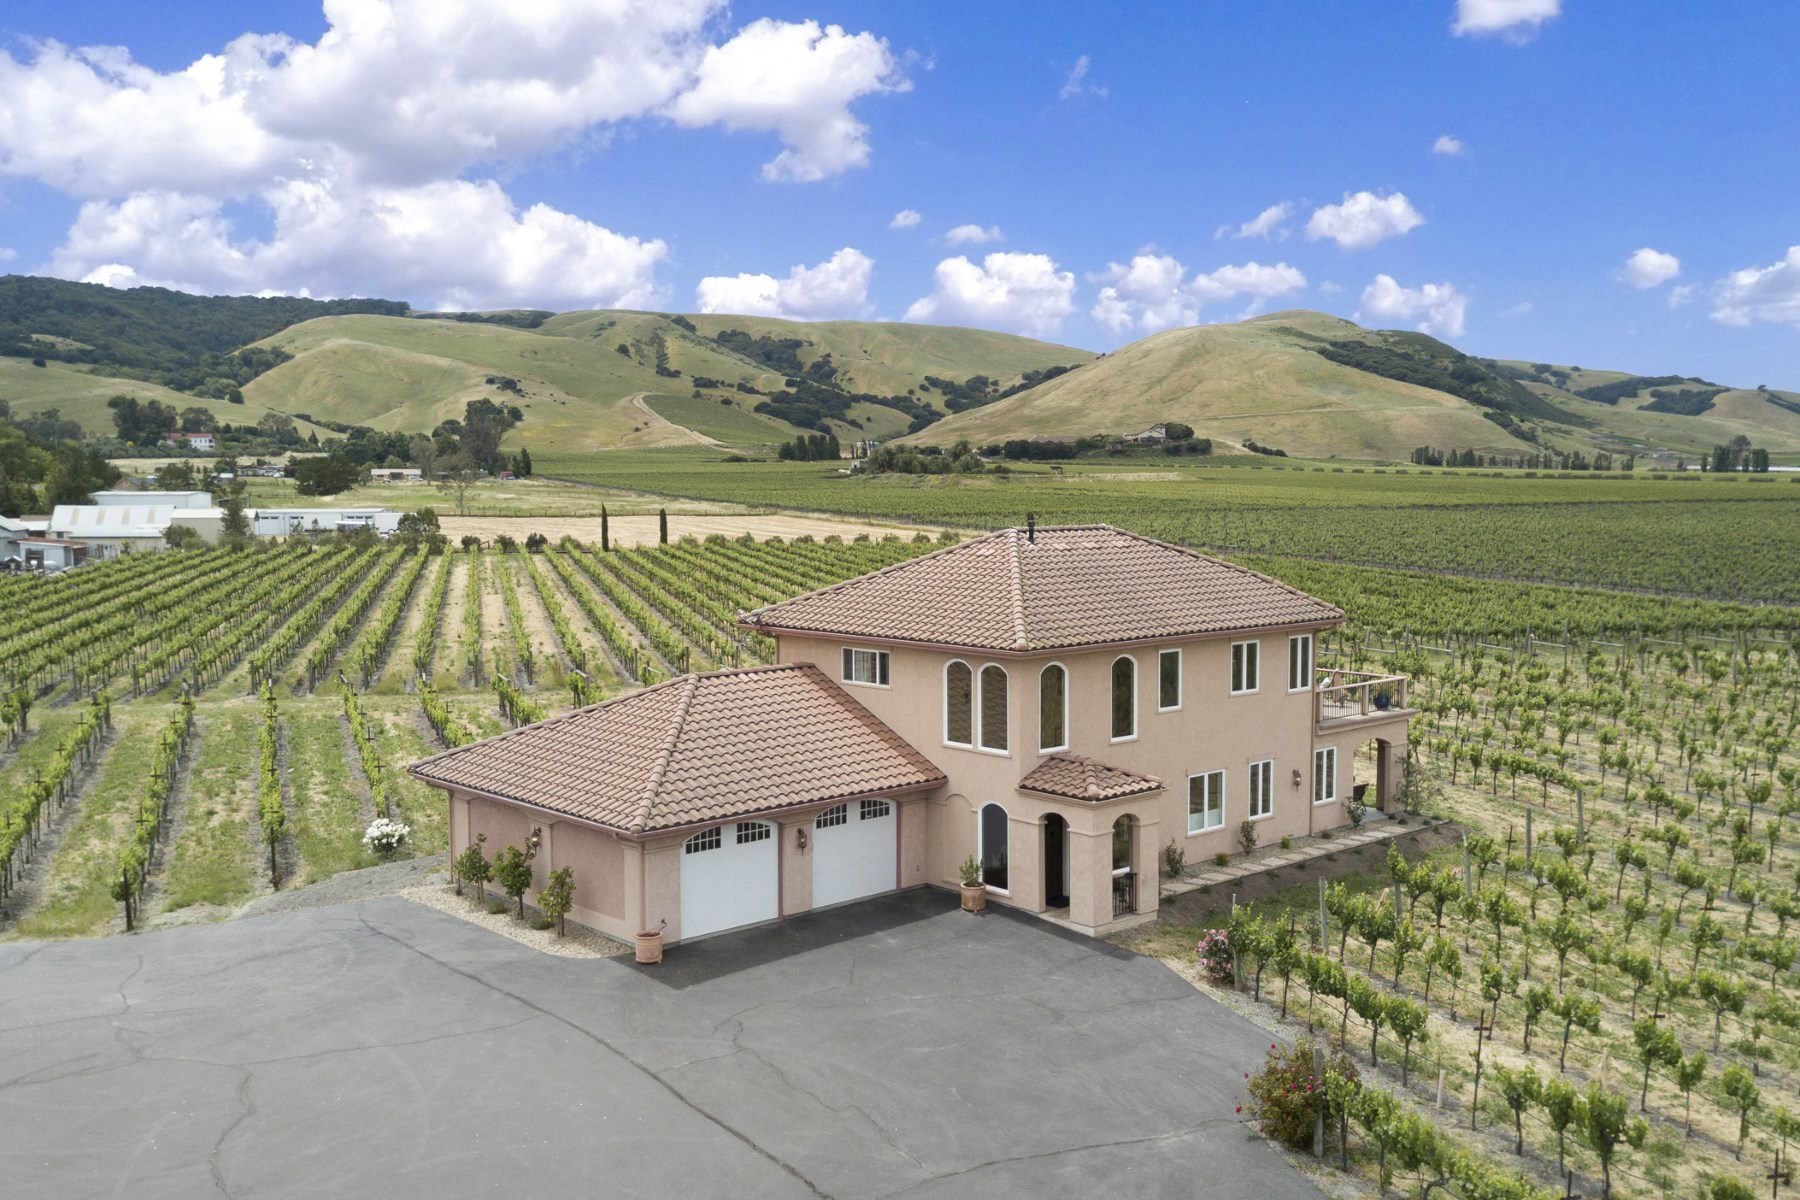 Vineyard for Sale at Sonoma Valley Vineyard Estate Sonoma, California, 95476 United States